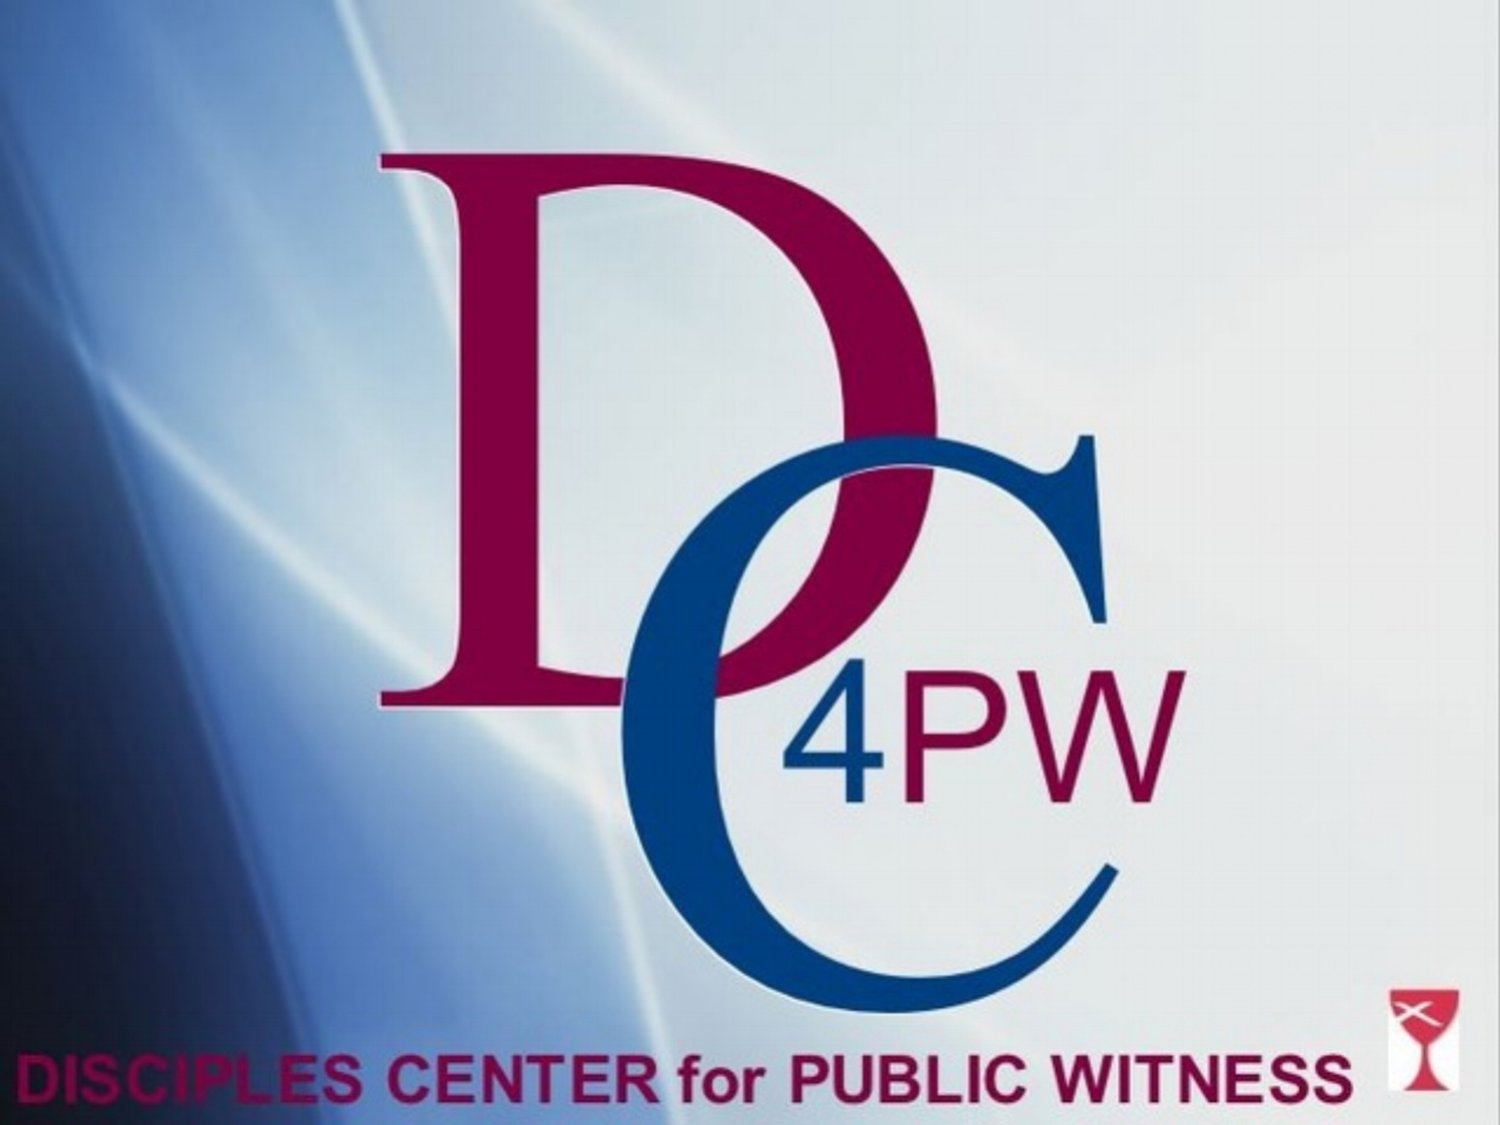 Disciples Center for Public Witness